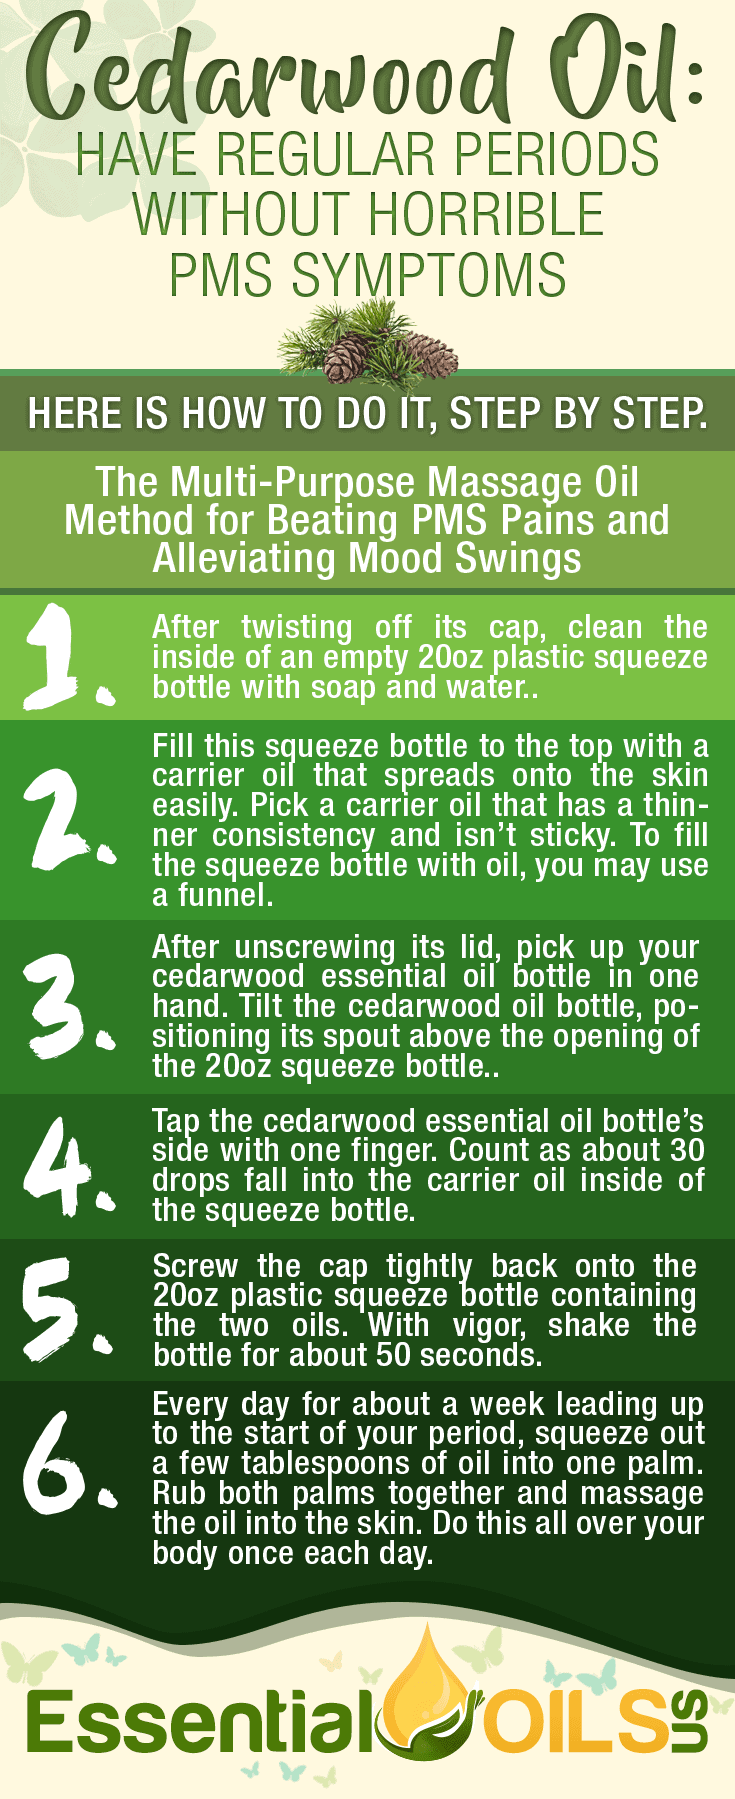 14 Ways That Cedarwood Essential Oil Can Improve Your Health, Your